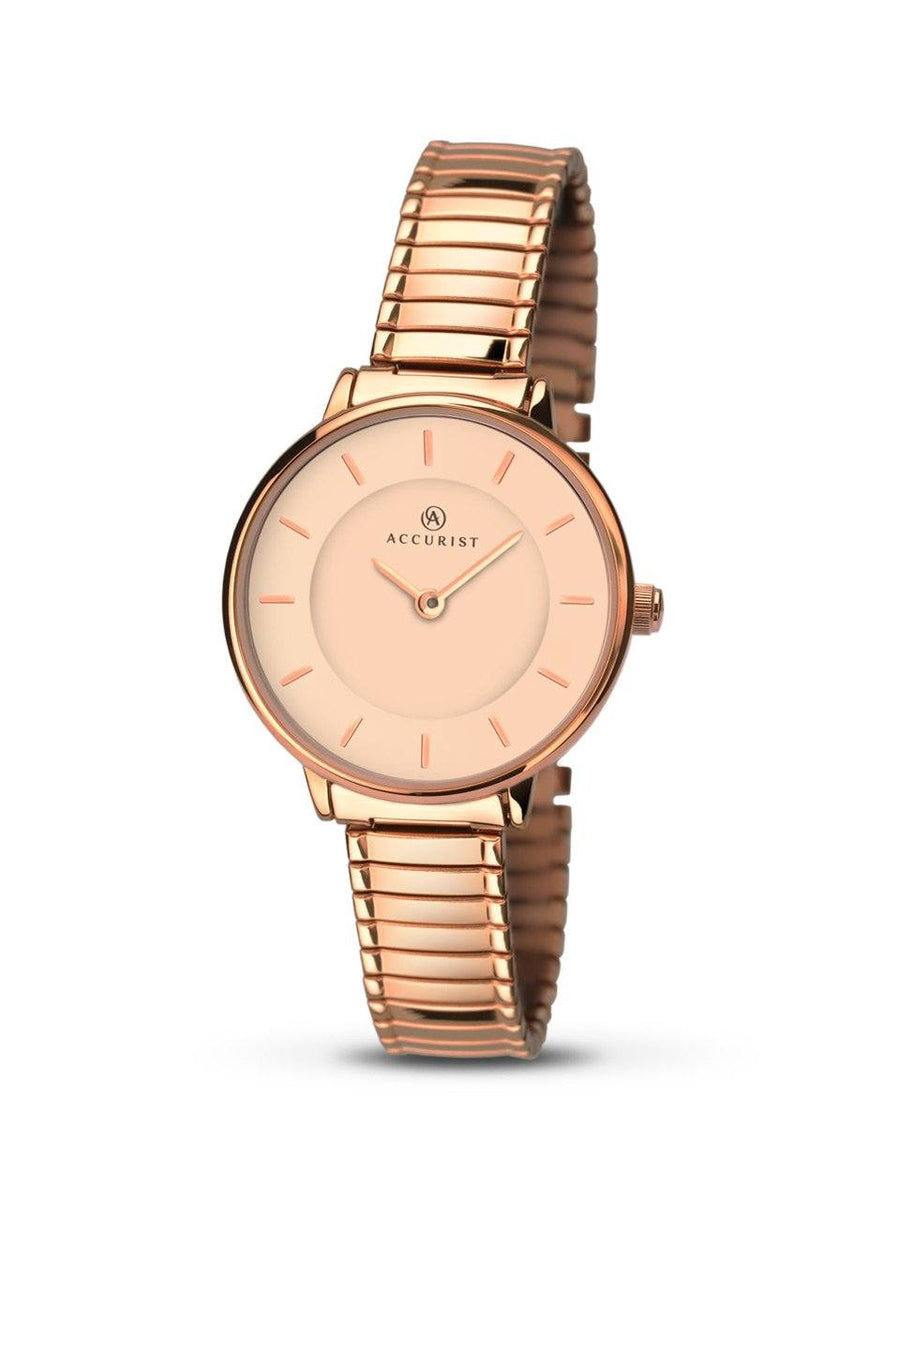 Accurist Rose Gold Watch with Expanding Strap 8141